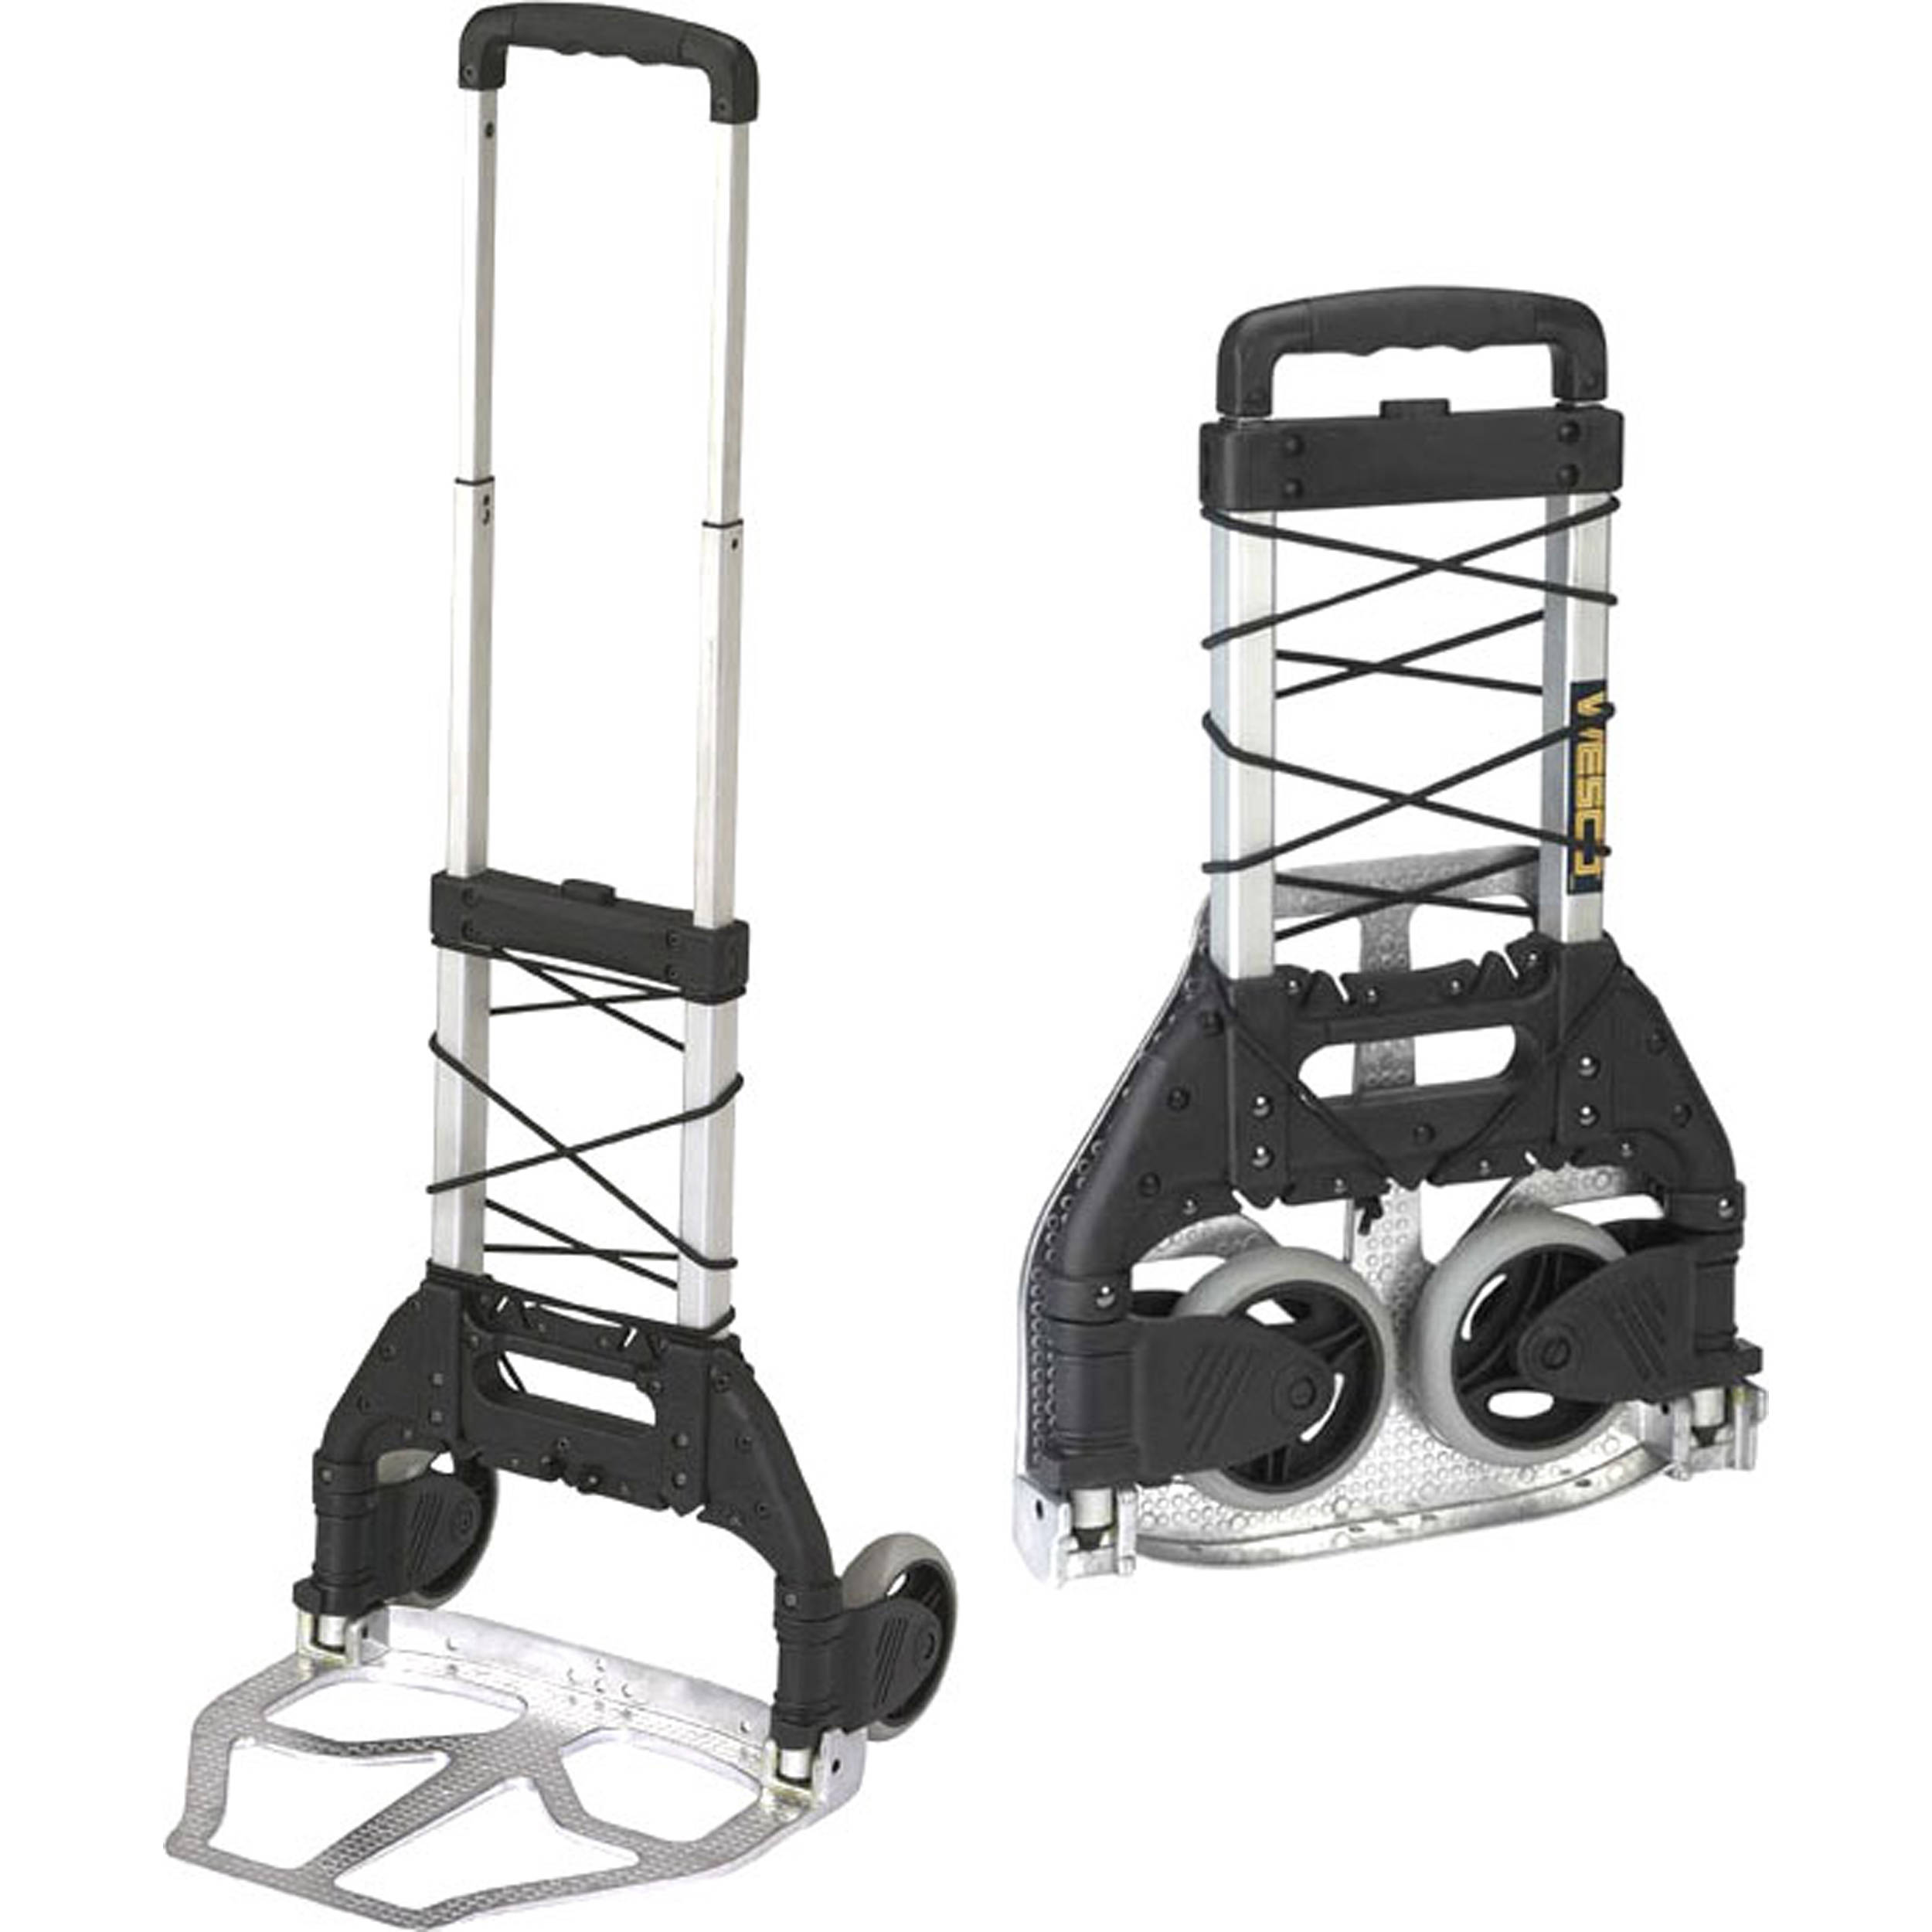 Wesco mini mover folding handtruck weight capacity 110 lbs 50kg